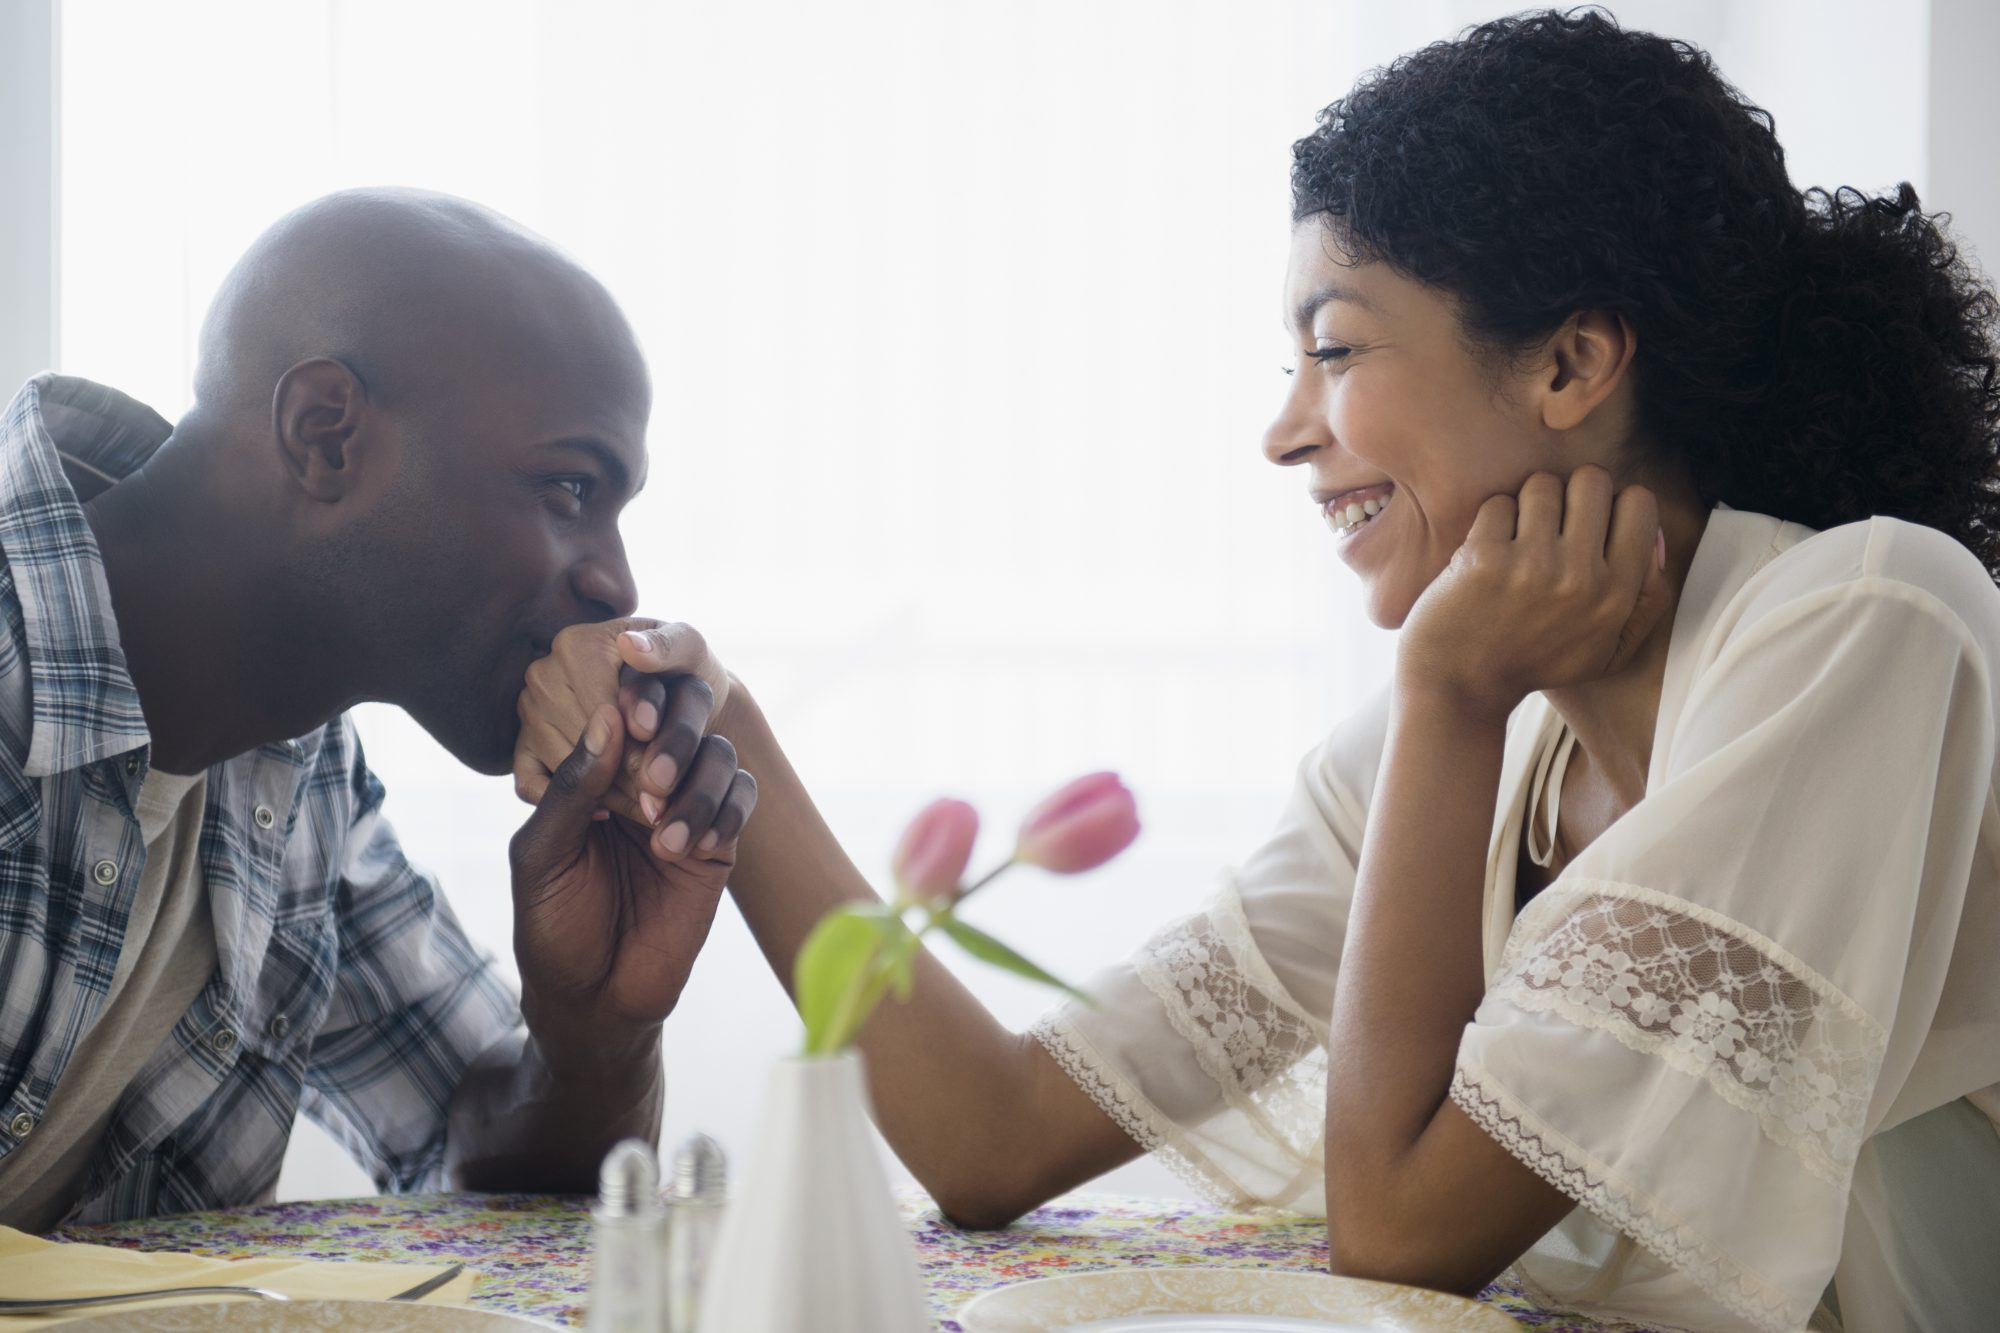 MELBA: Signs youre dating someone with anxiety